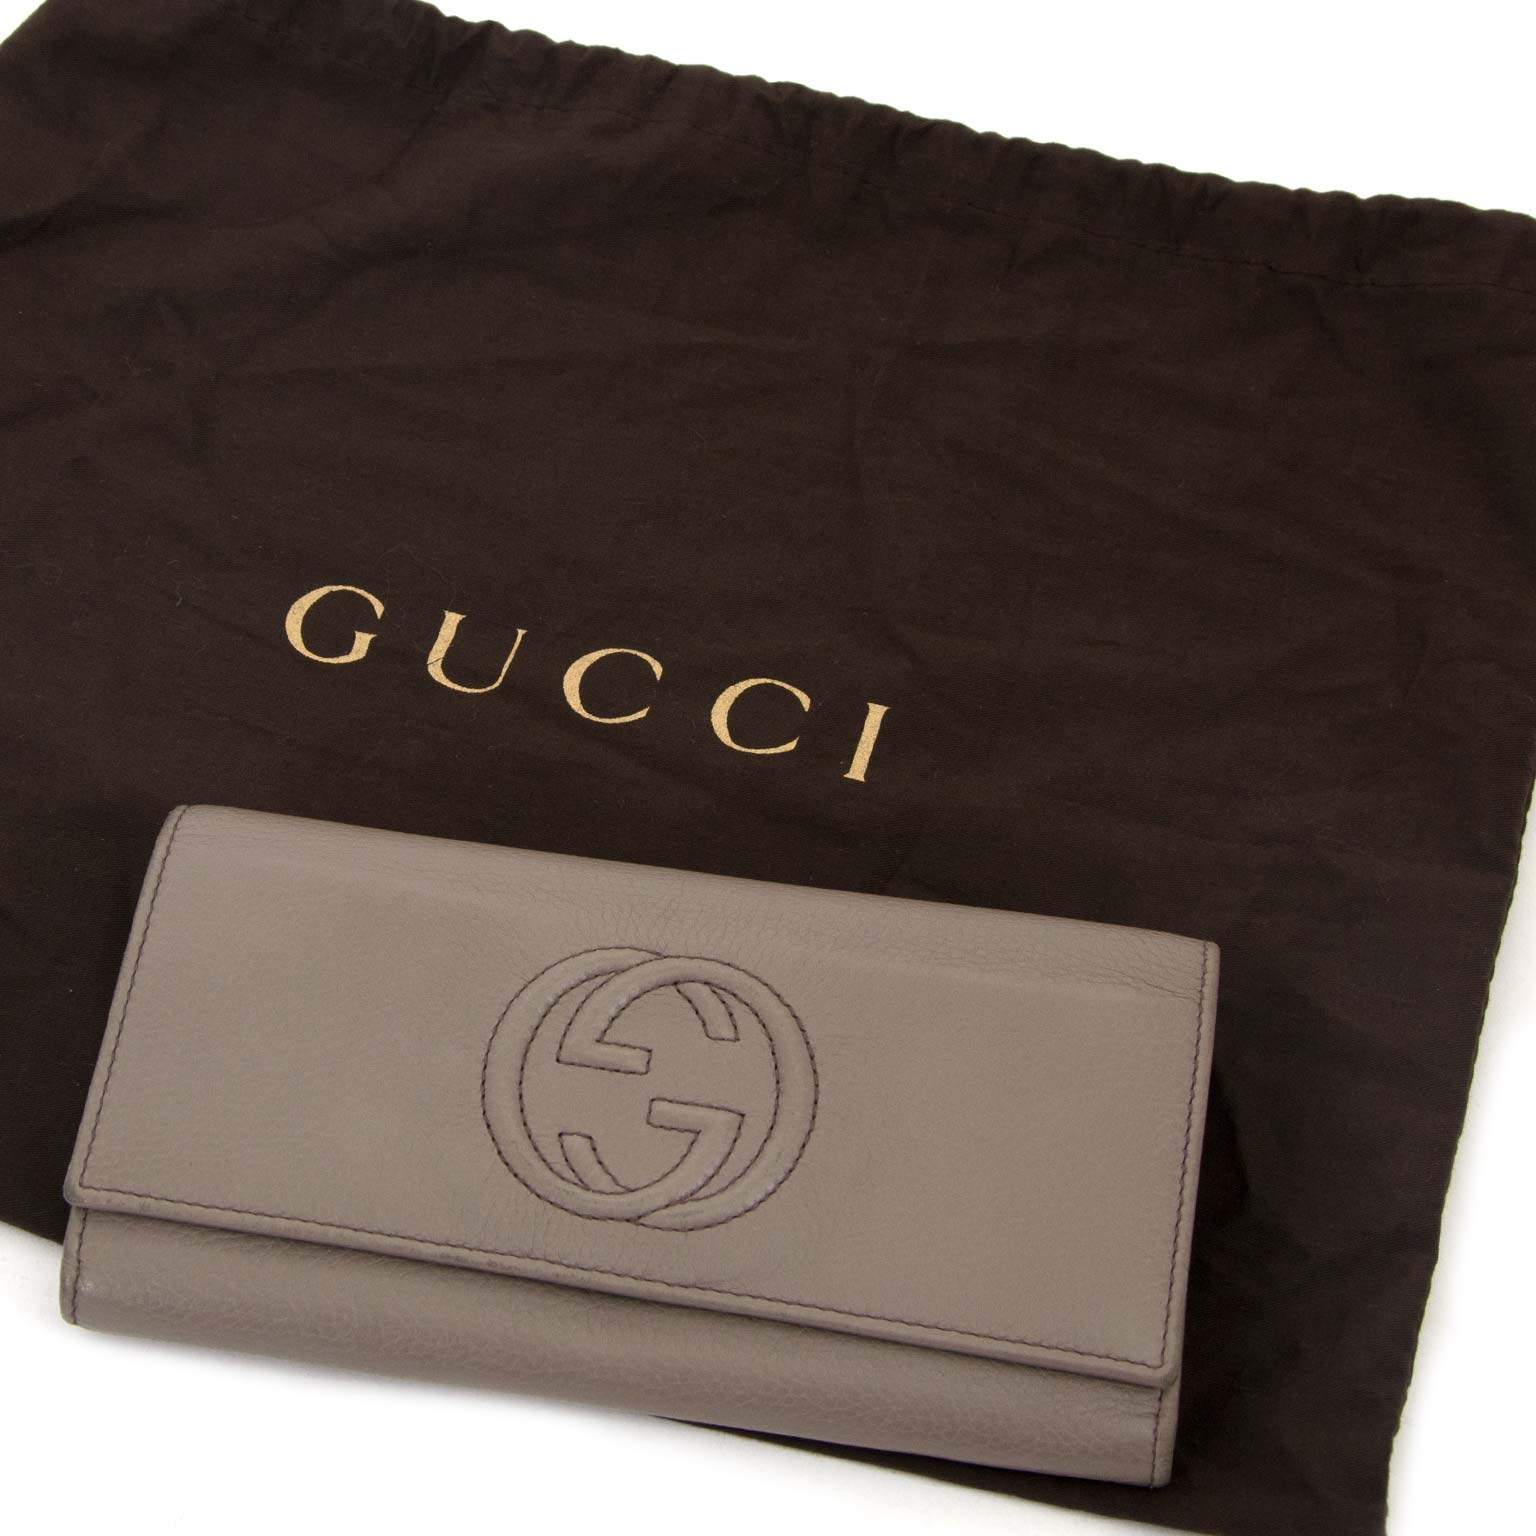 gucci grey soho leather wallet now for sale at labellov vintage fashion webshop belgium